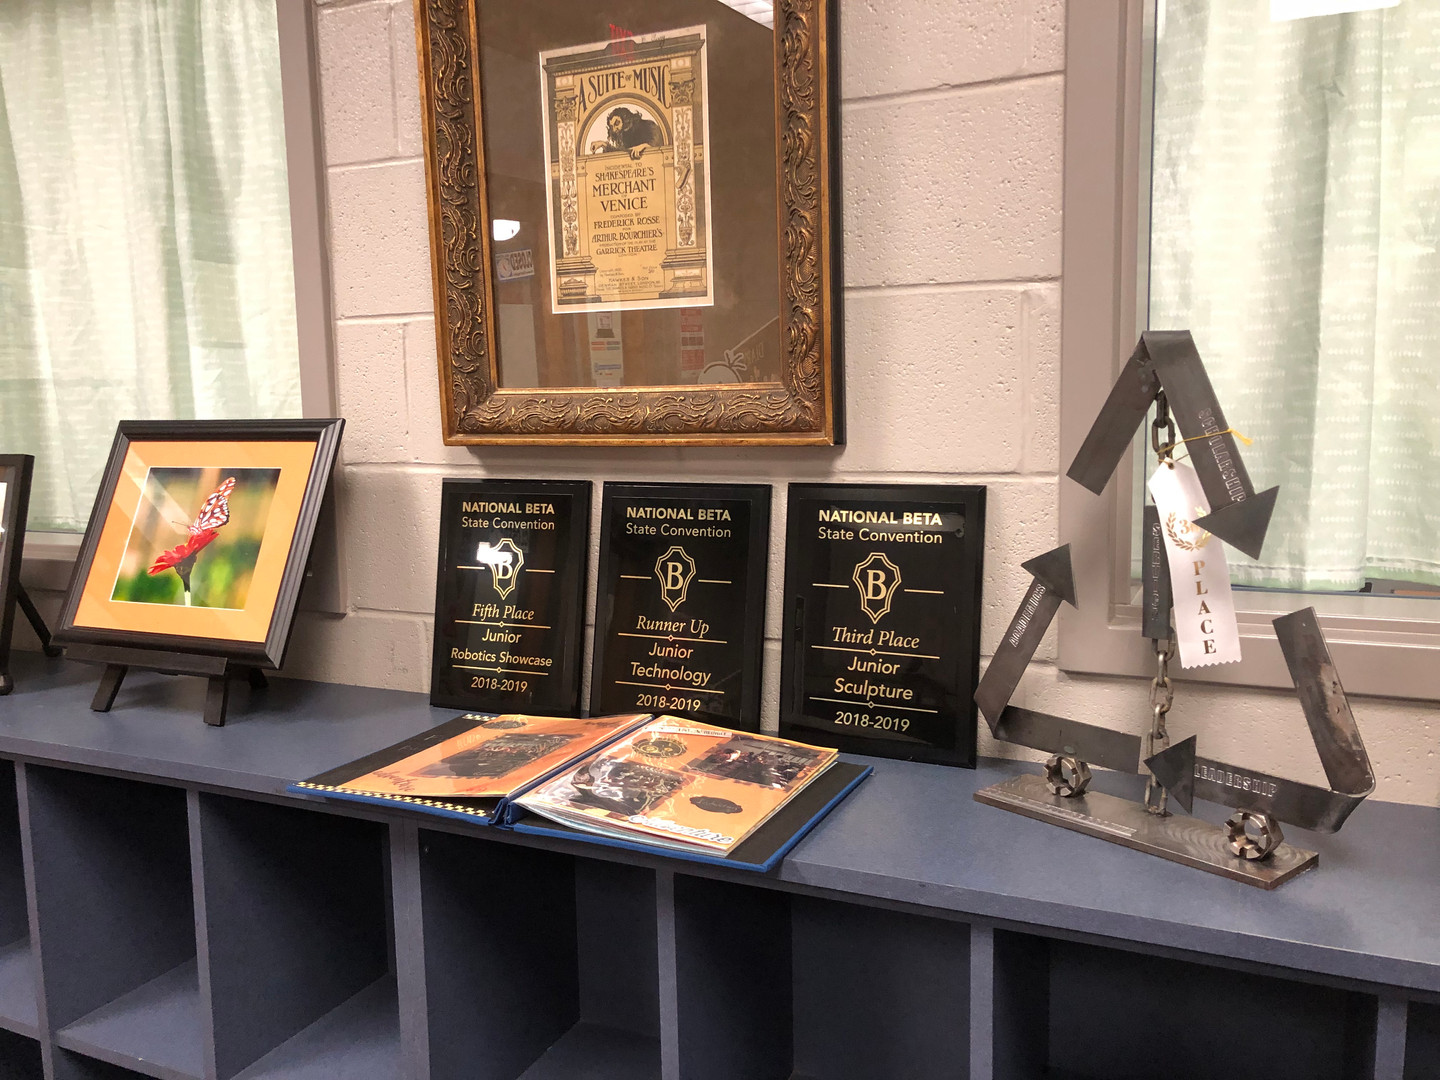 BETA Awards on Display in Library